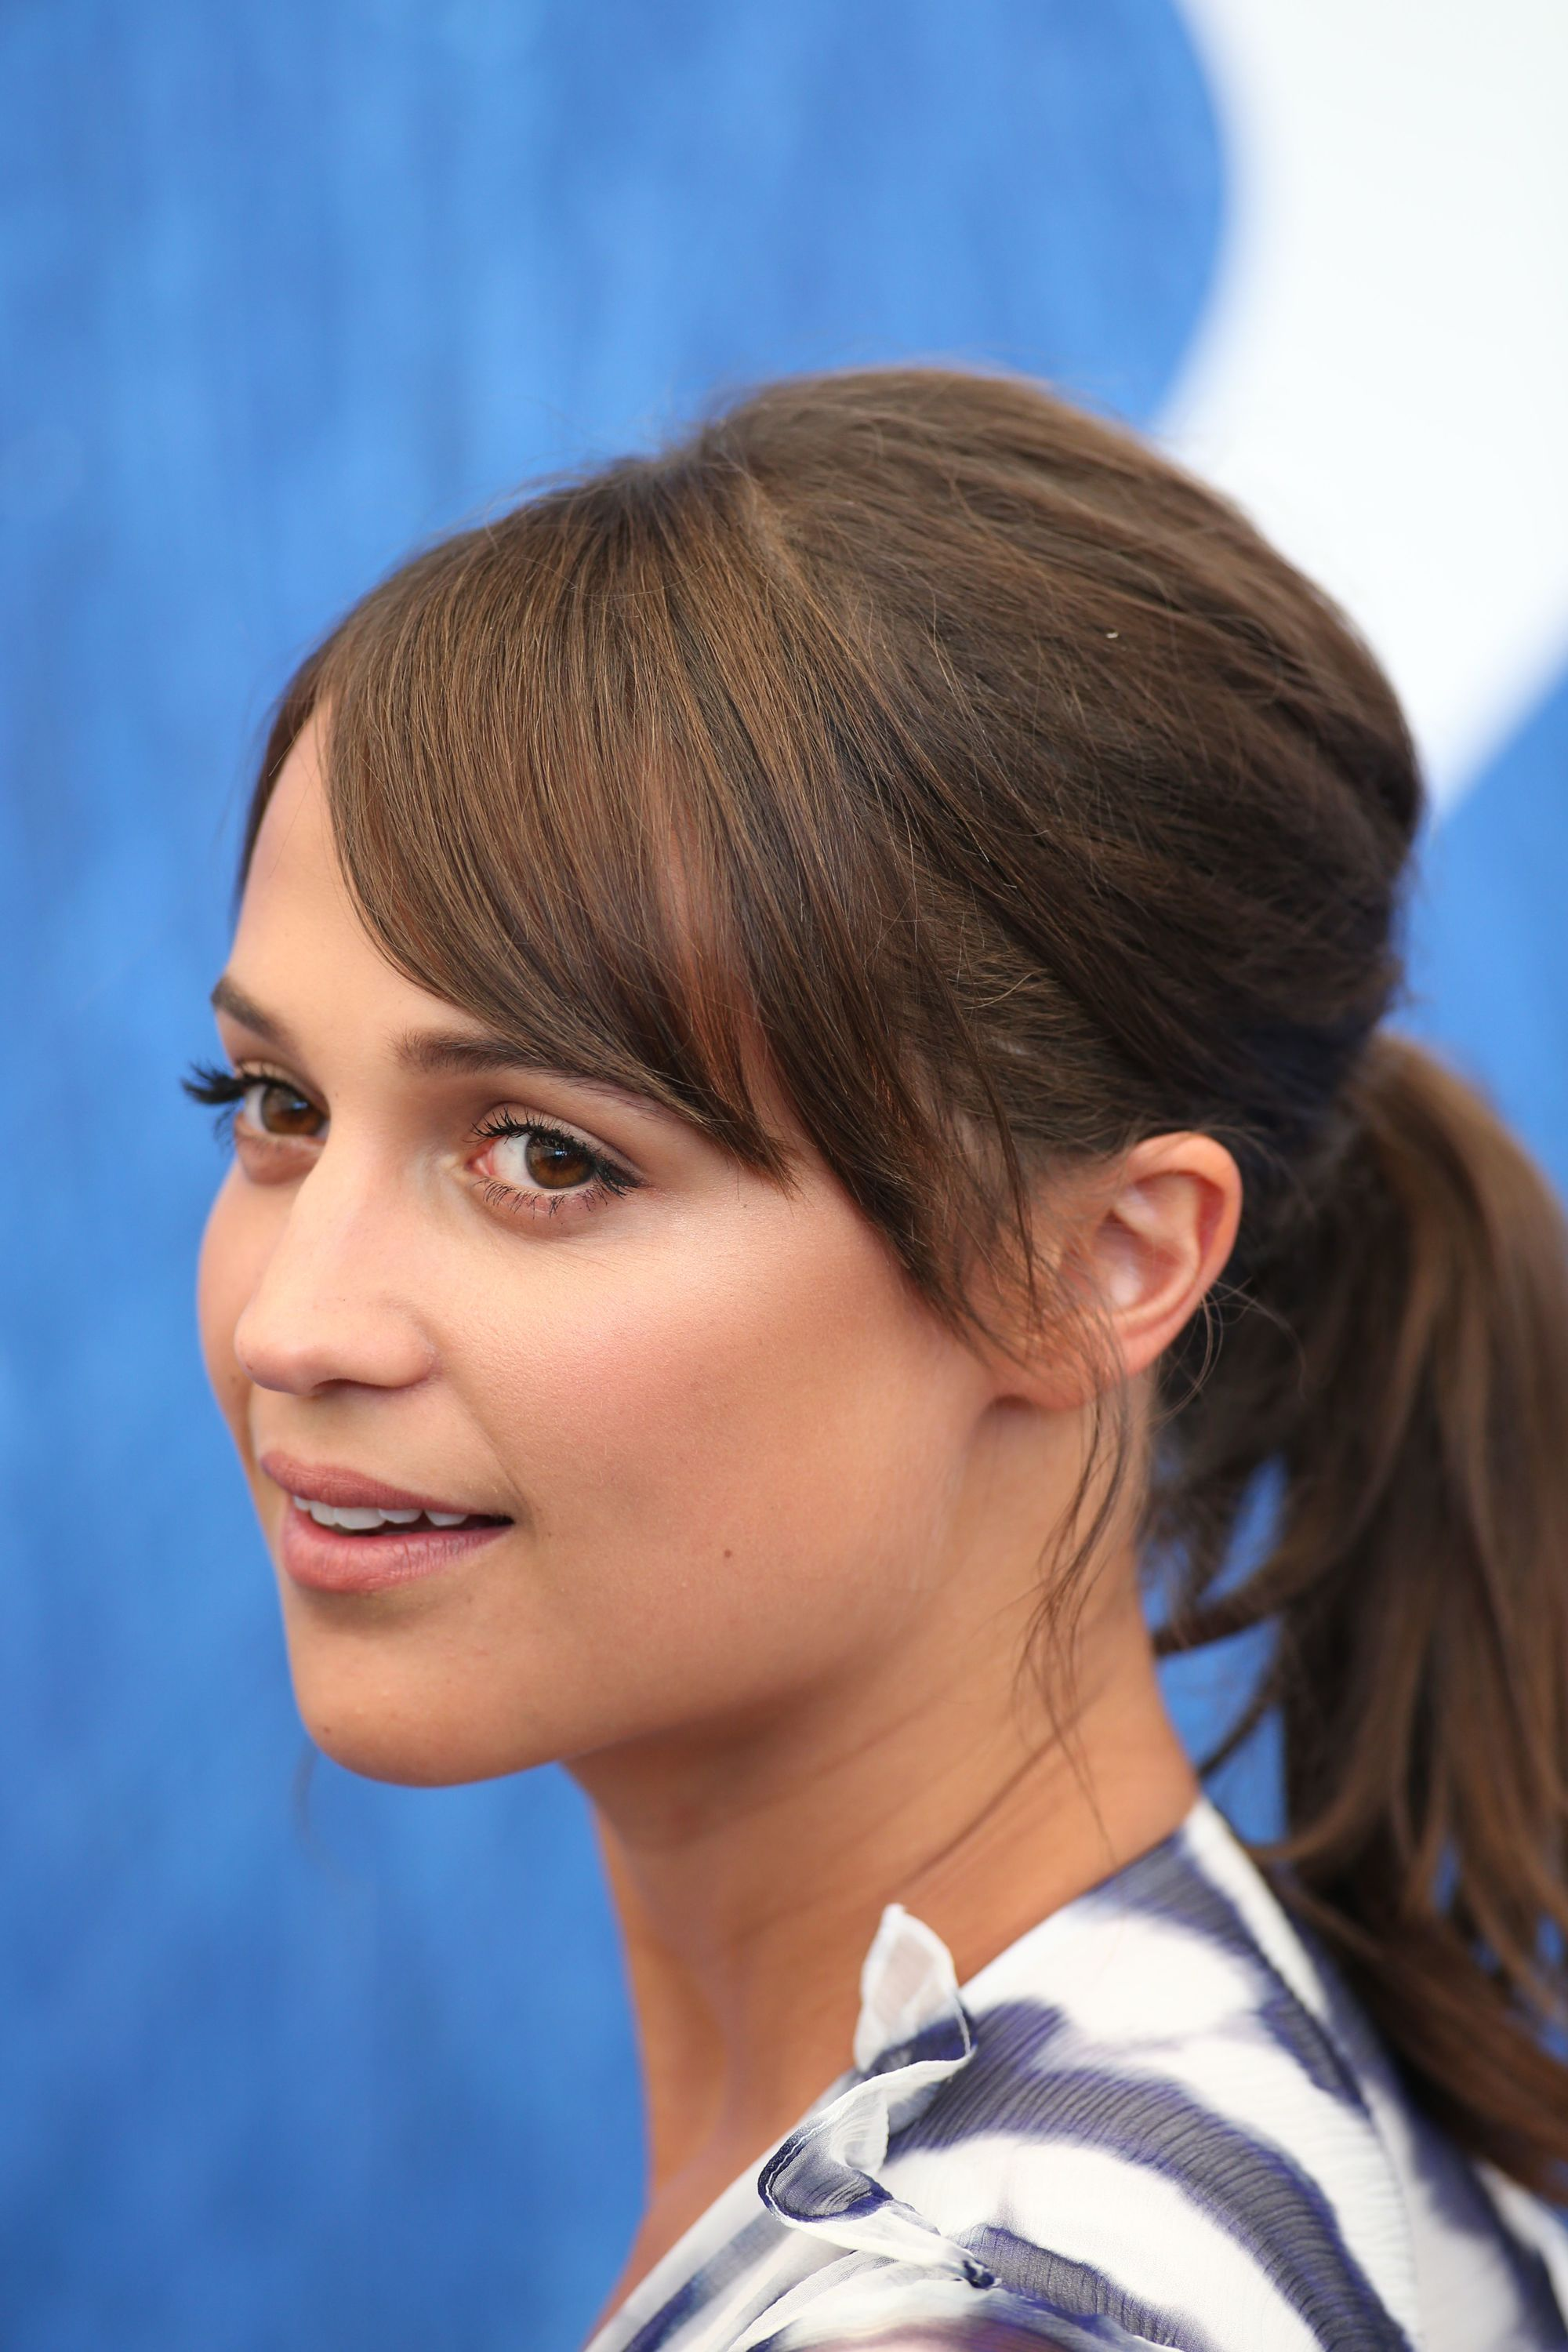 swedish actress alicia vikander at the venice film festival in 2016 with tinkerbell style bangs